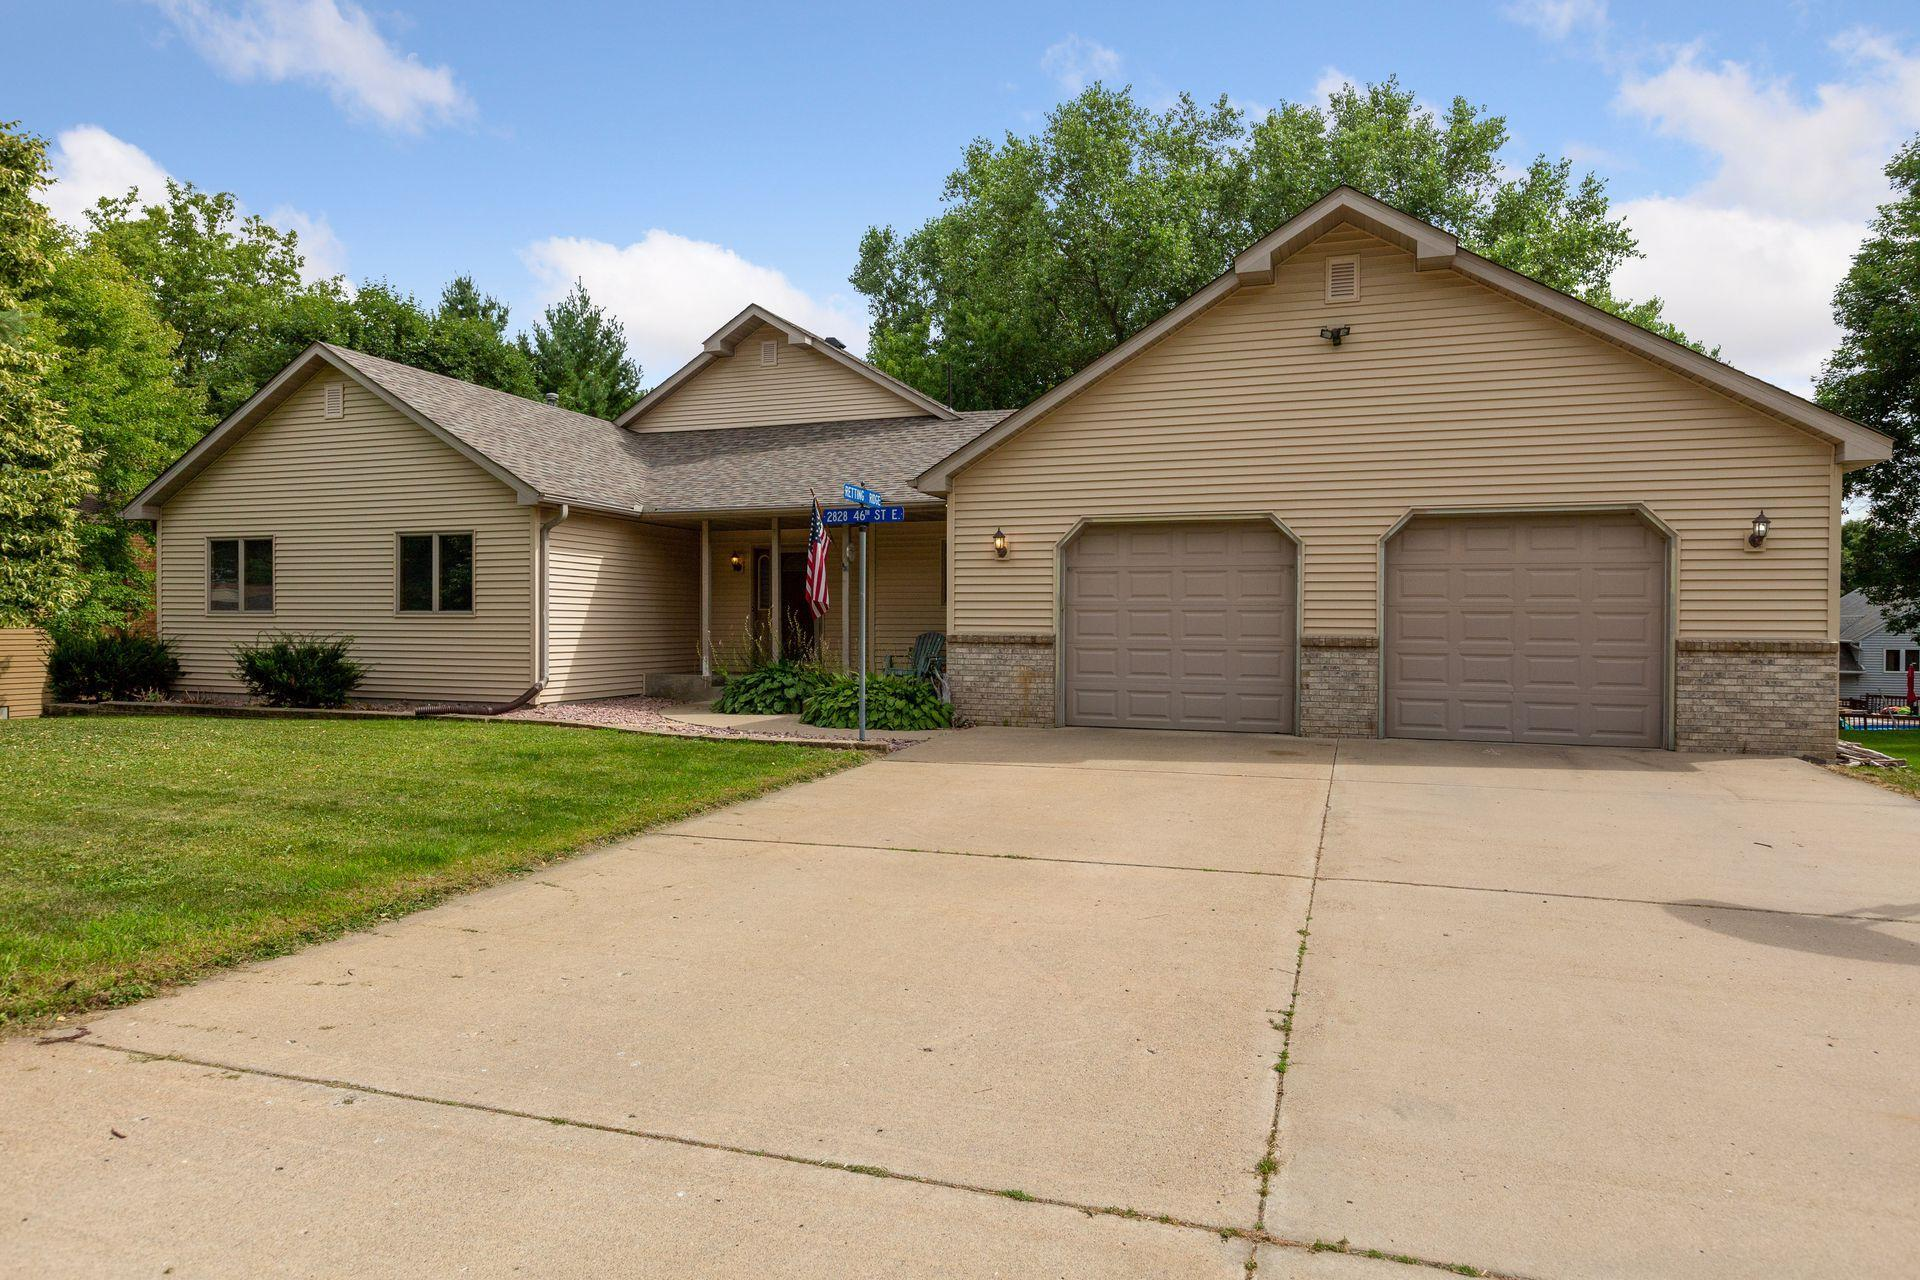 2828 46th Street E Property Photo - Inver Grove Heights, MN real estate listing